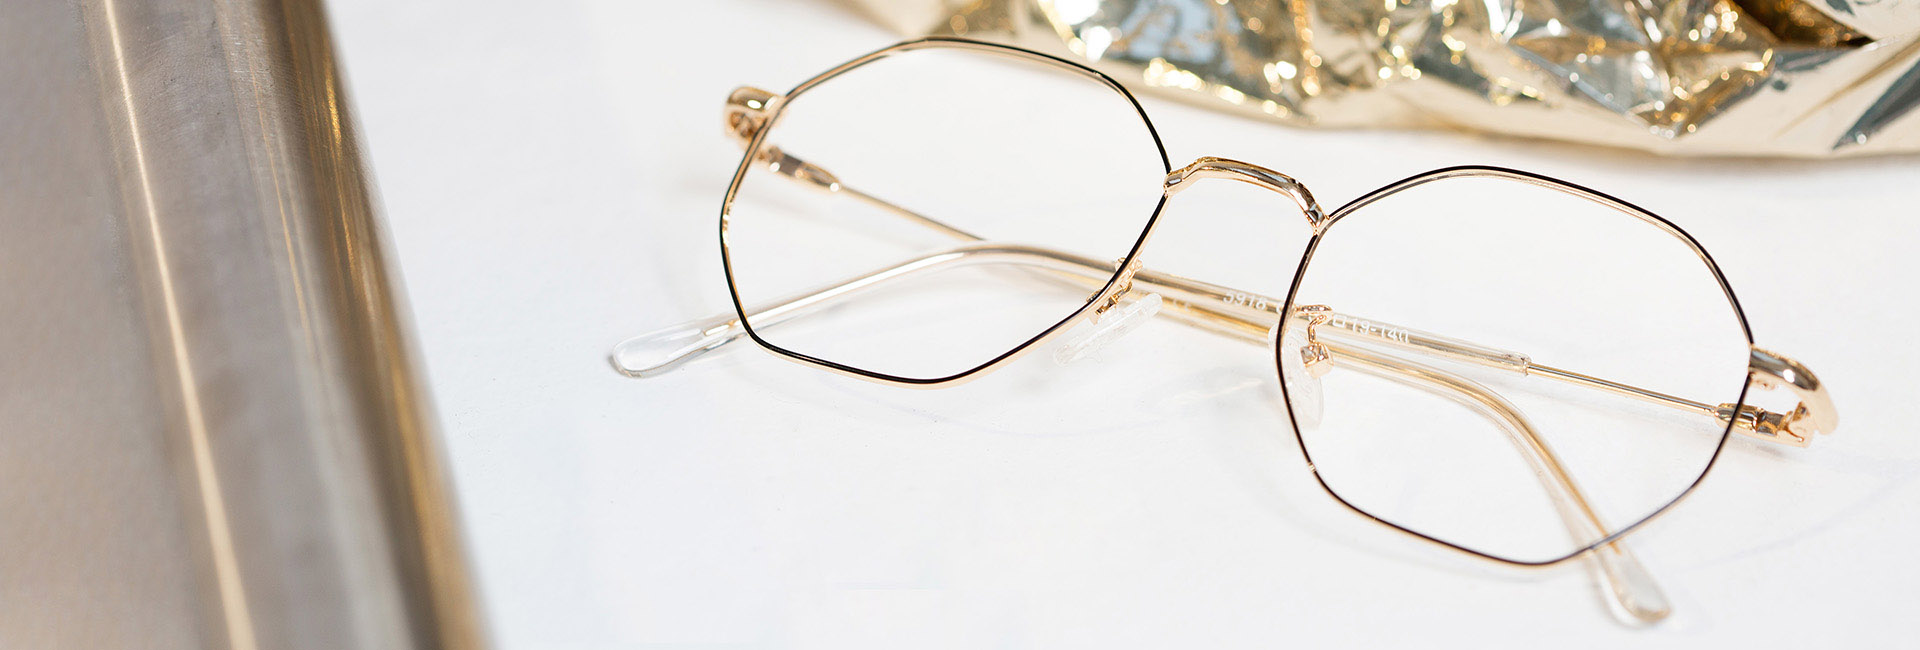 lenses and gold metal glasses